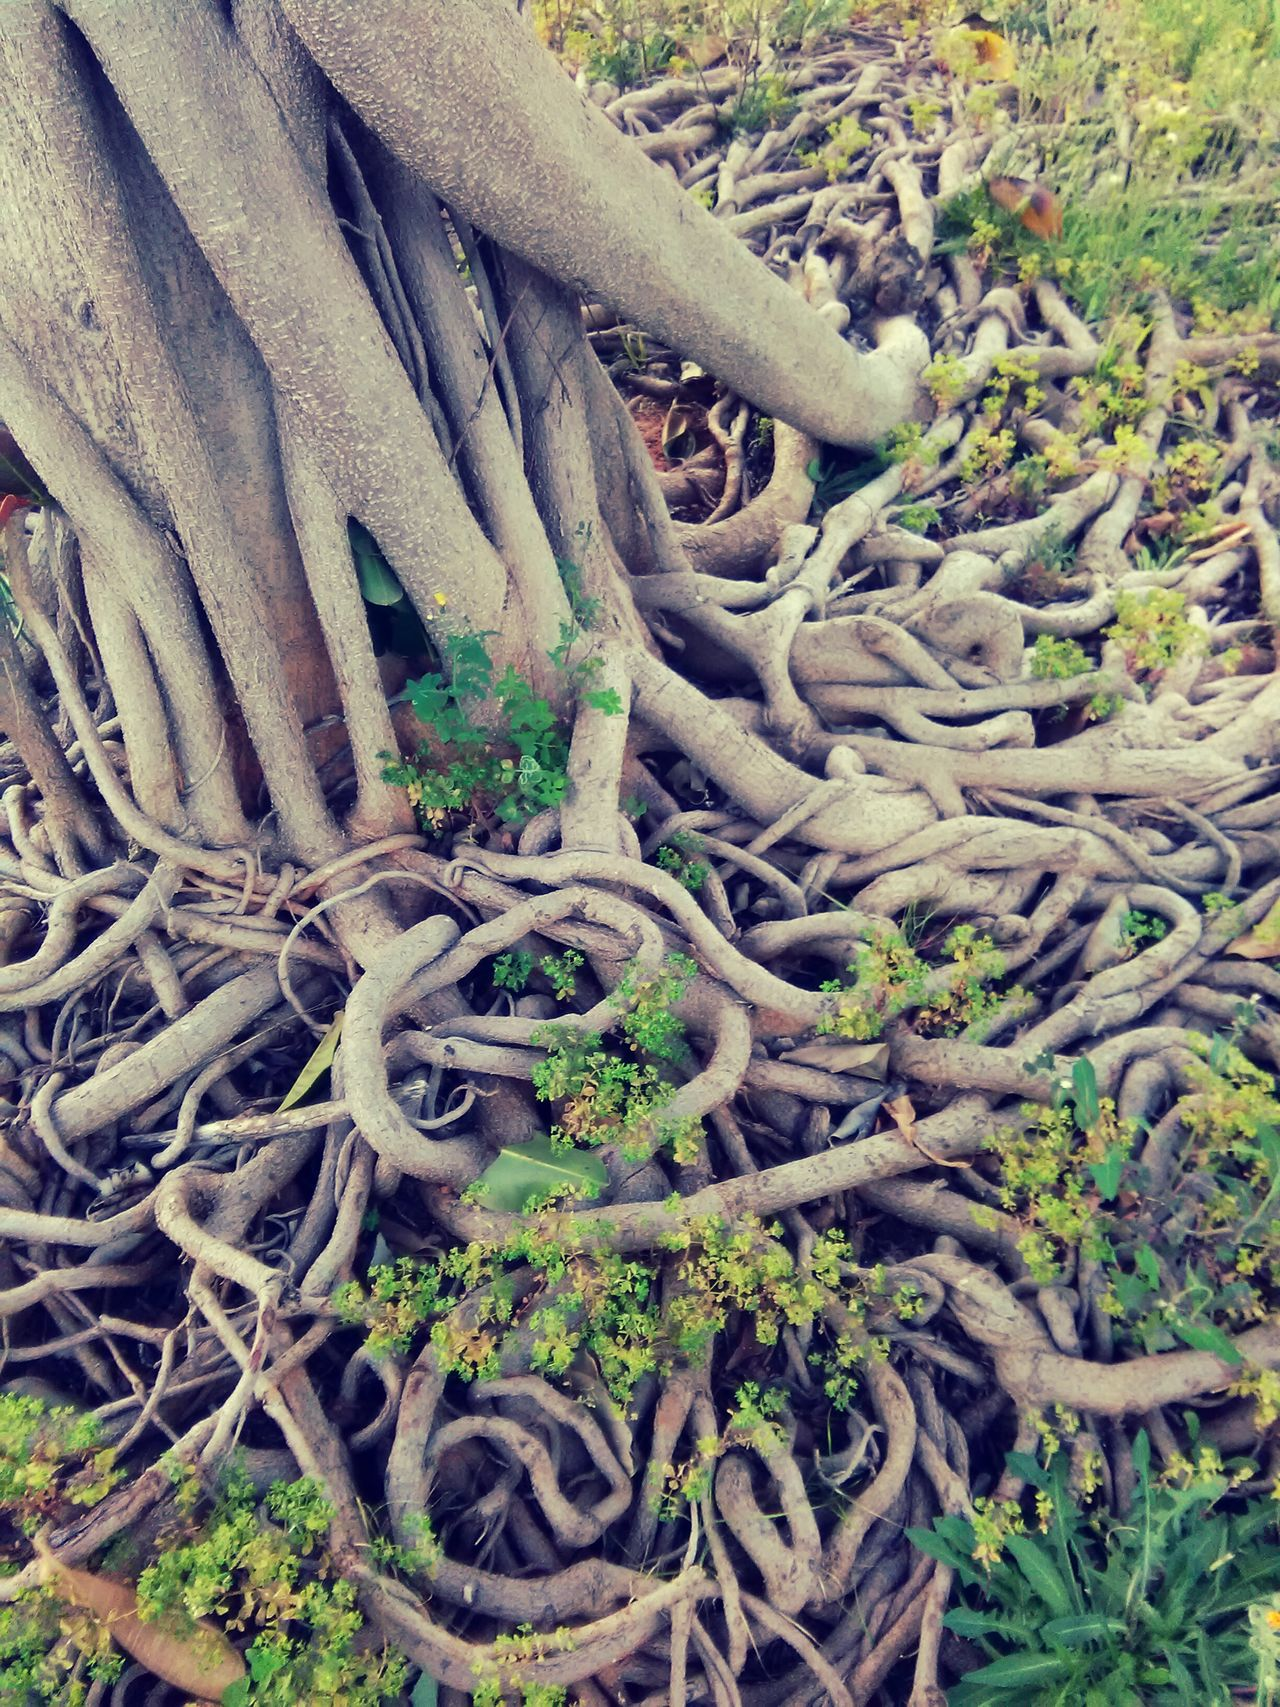 Nature Growth Roots Of Tree Roots On The Ground Roots & Leaves Roots Beauty In Nature Tree Plant Growth Growth Flowers Flower Head Flowers, Nature And Beauty Growing Plants Wildflowers Wild Flower Day No People